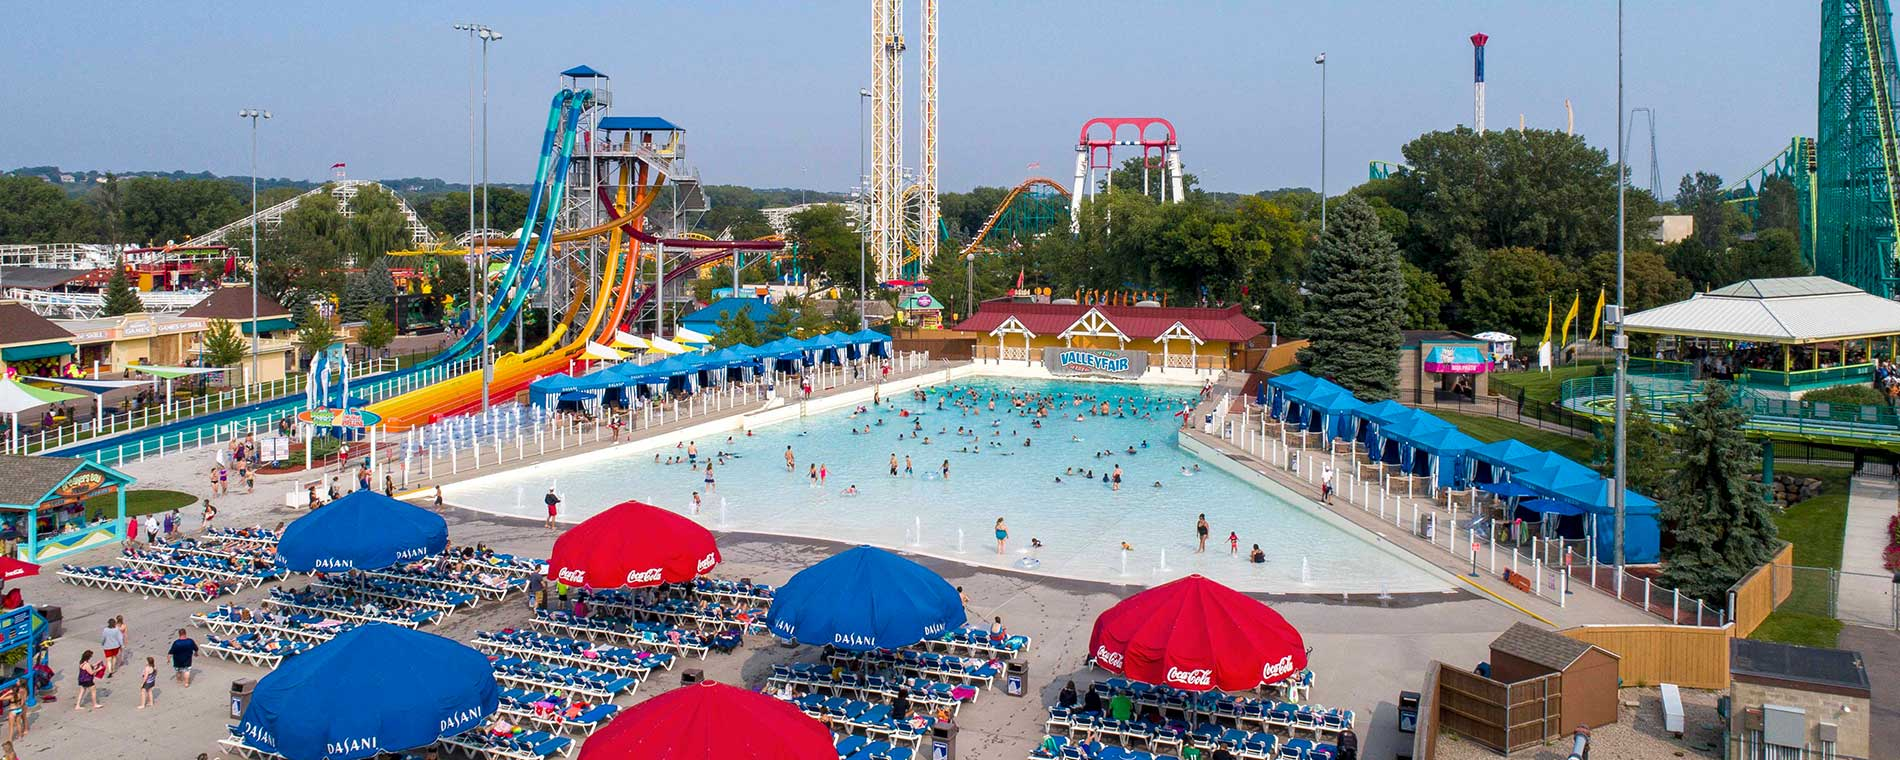 Soak City Water Park